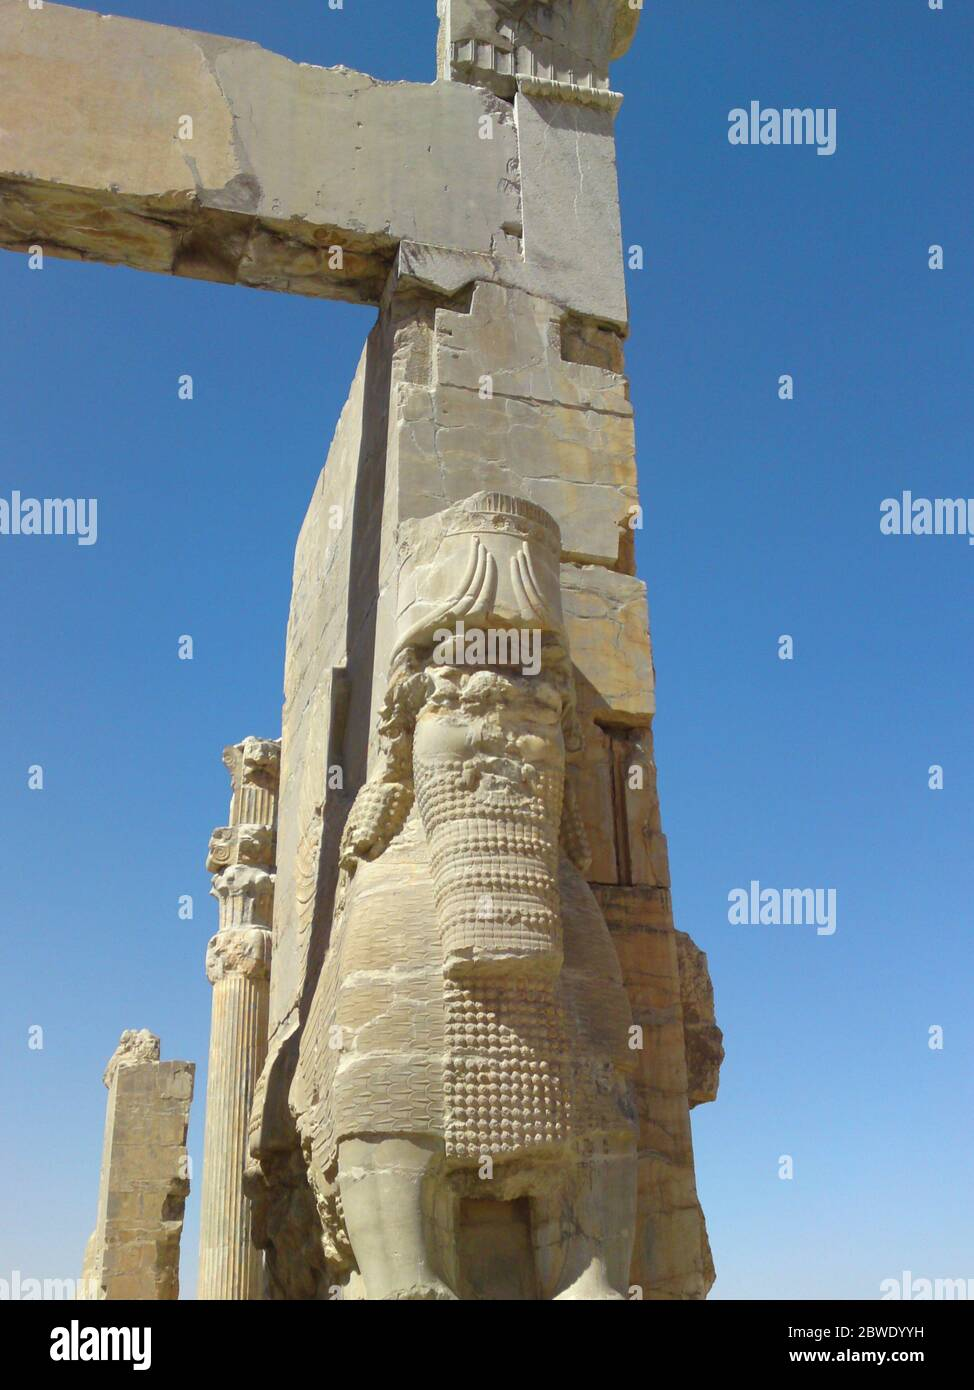 Shiraz Persepolis Iran The Great Entrance To All Nations Gate Xerxes Gate In Persepolis Archaeological Site With Giant Statues Of Lamassu Protect Stock Photo Alamy